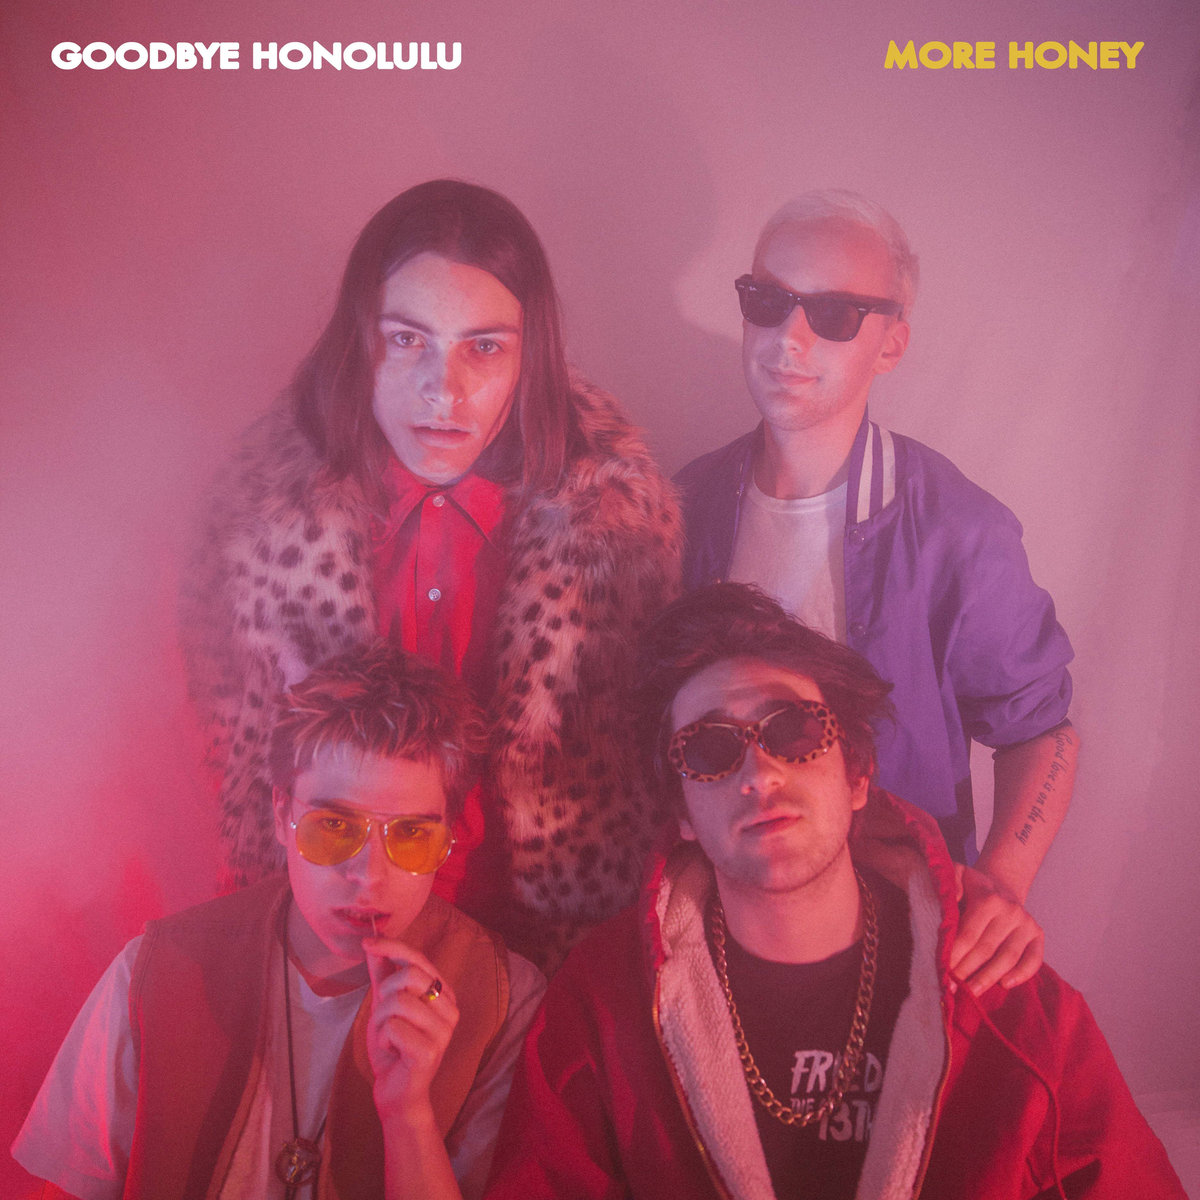 More Honey (EP) - Goodbye Honolulu - Contributing Songwriter, Drums on tracks 1-6, Background Vocals on tracks 1, 3-6, Tambourine on track 1 & 3, Cowbell on track 4